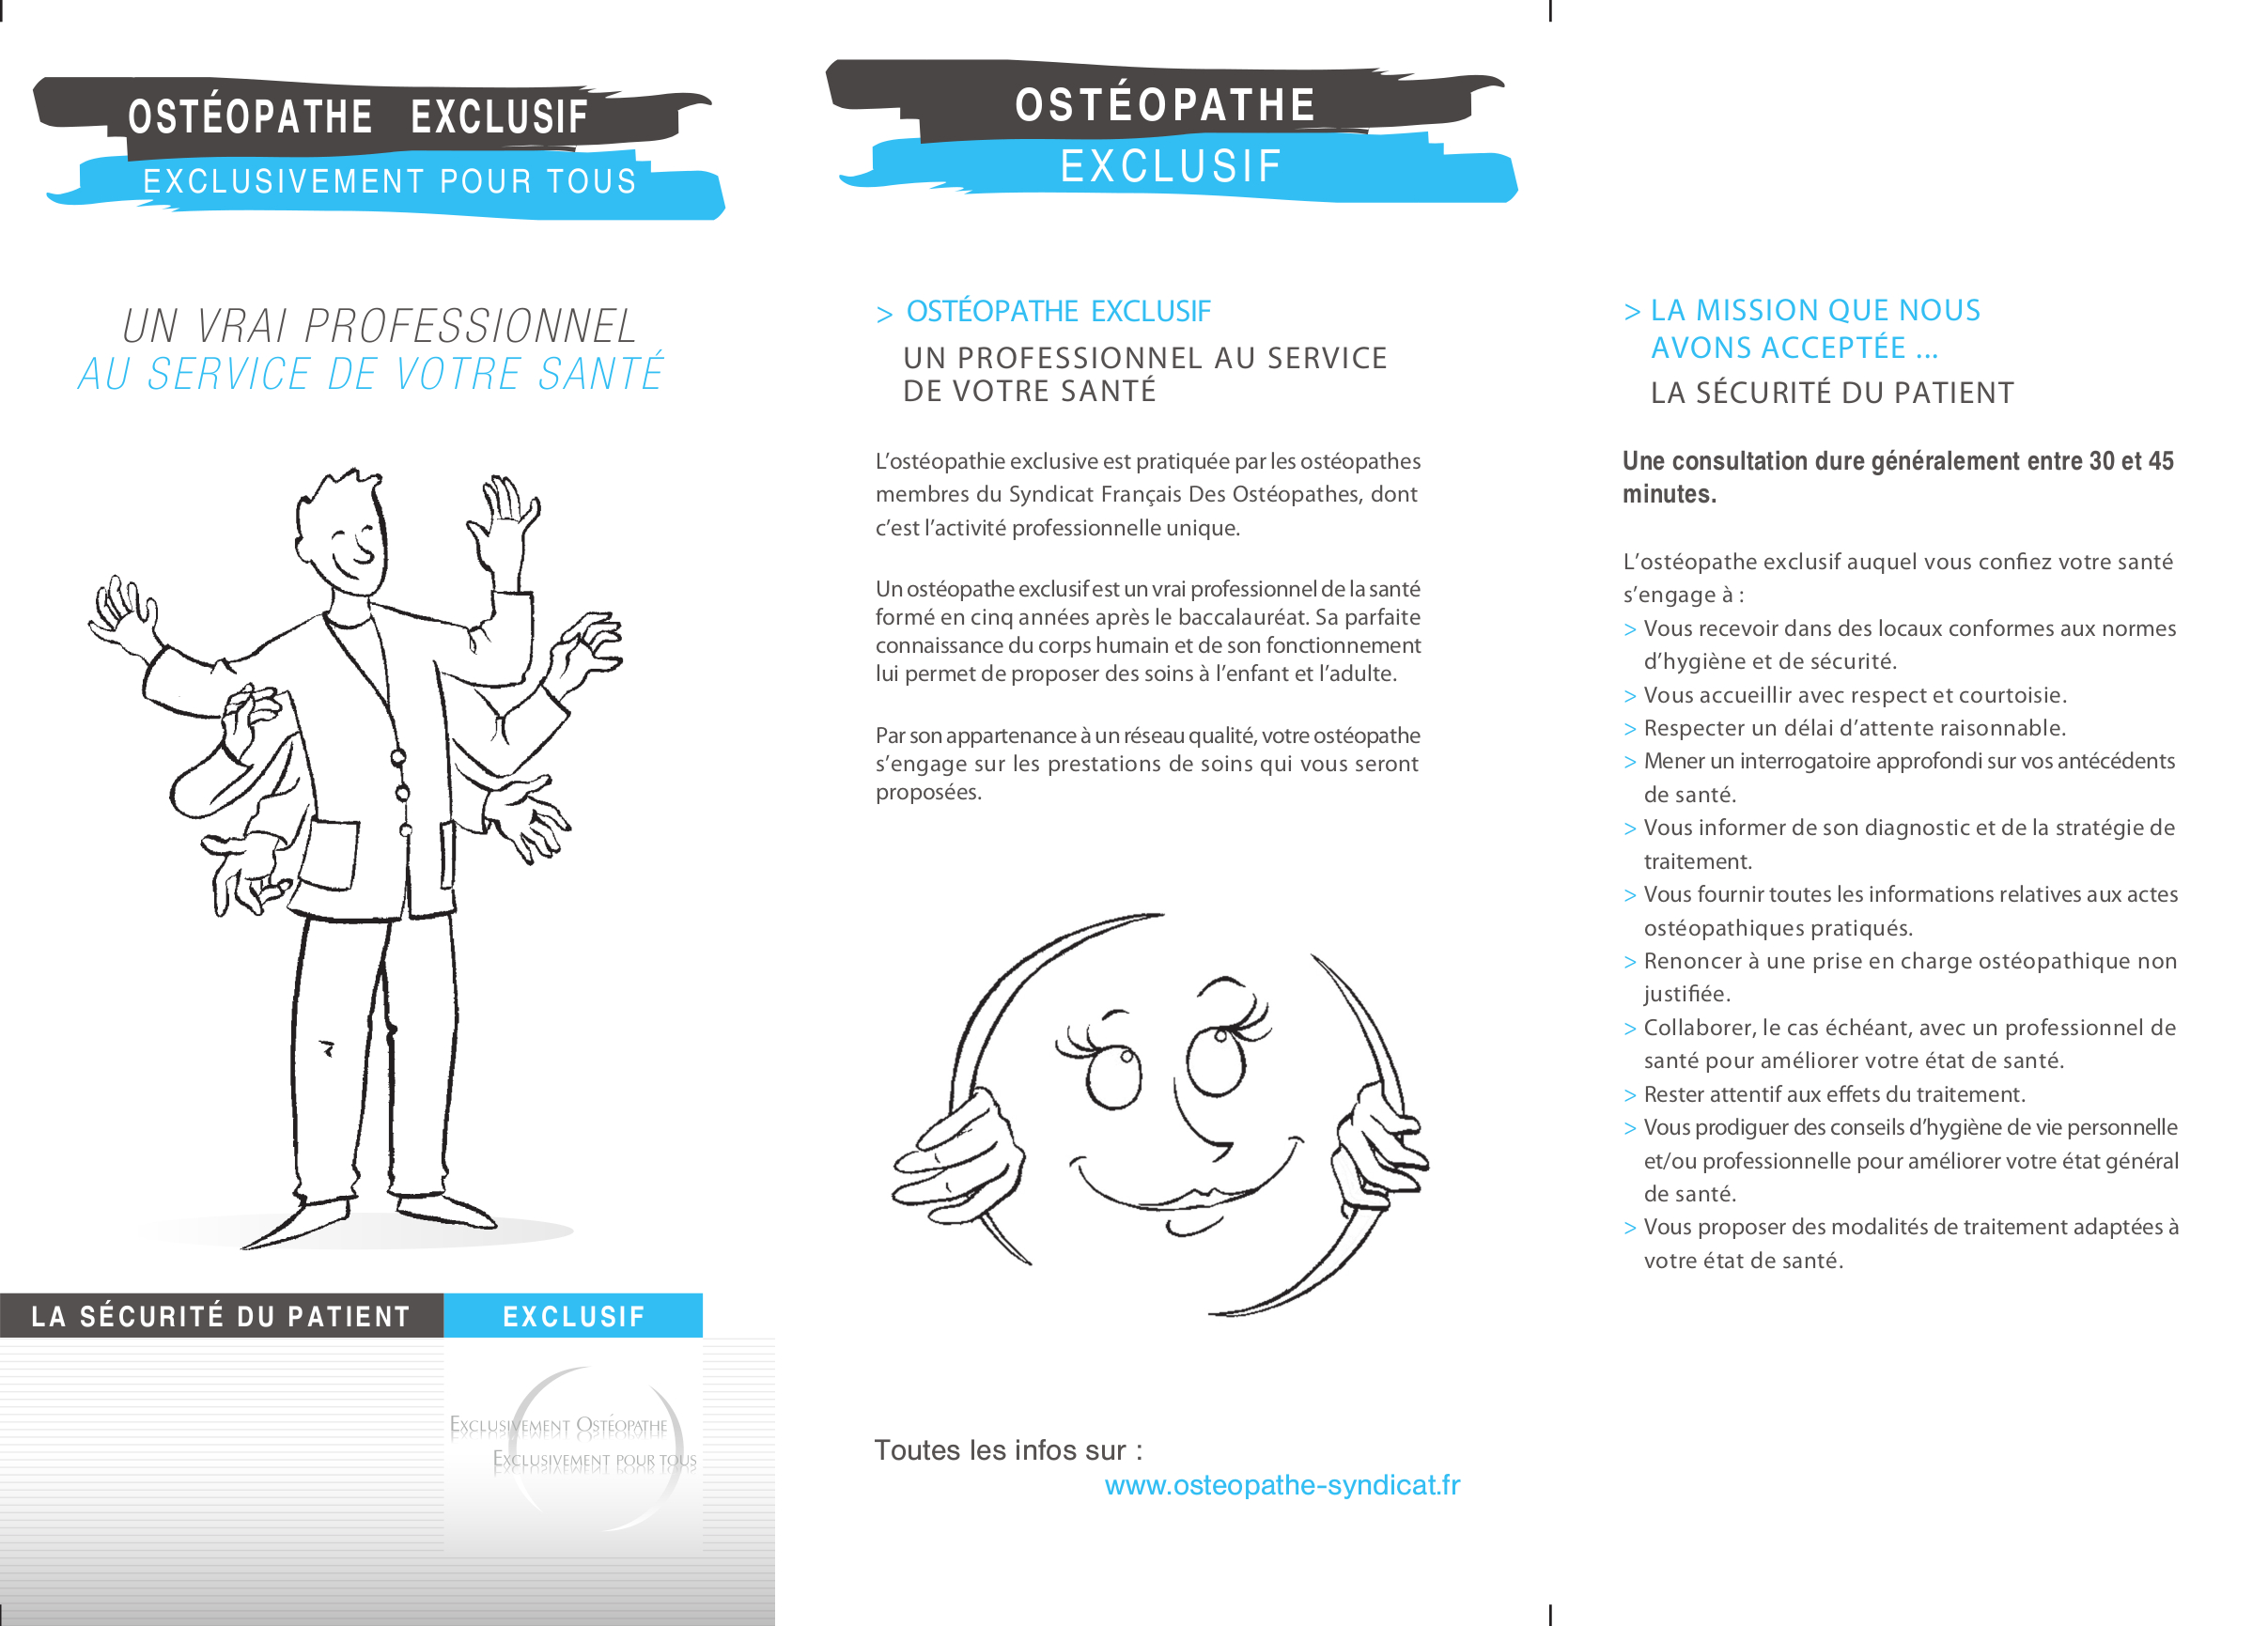 Fiche exclusif page 1